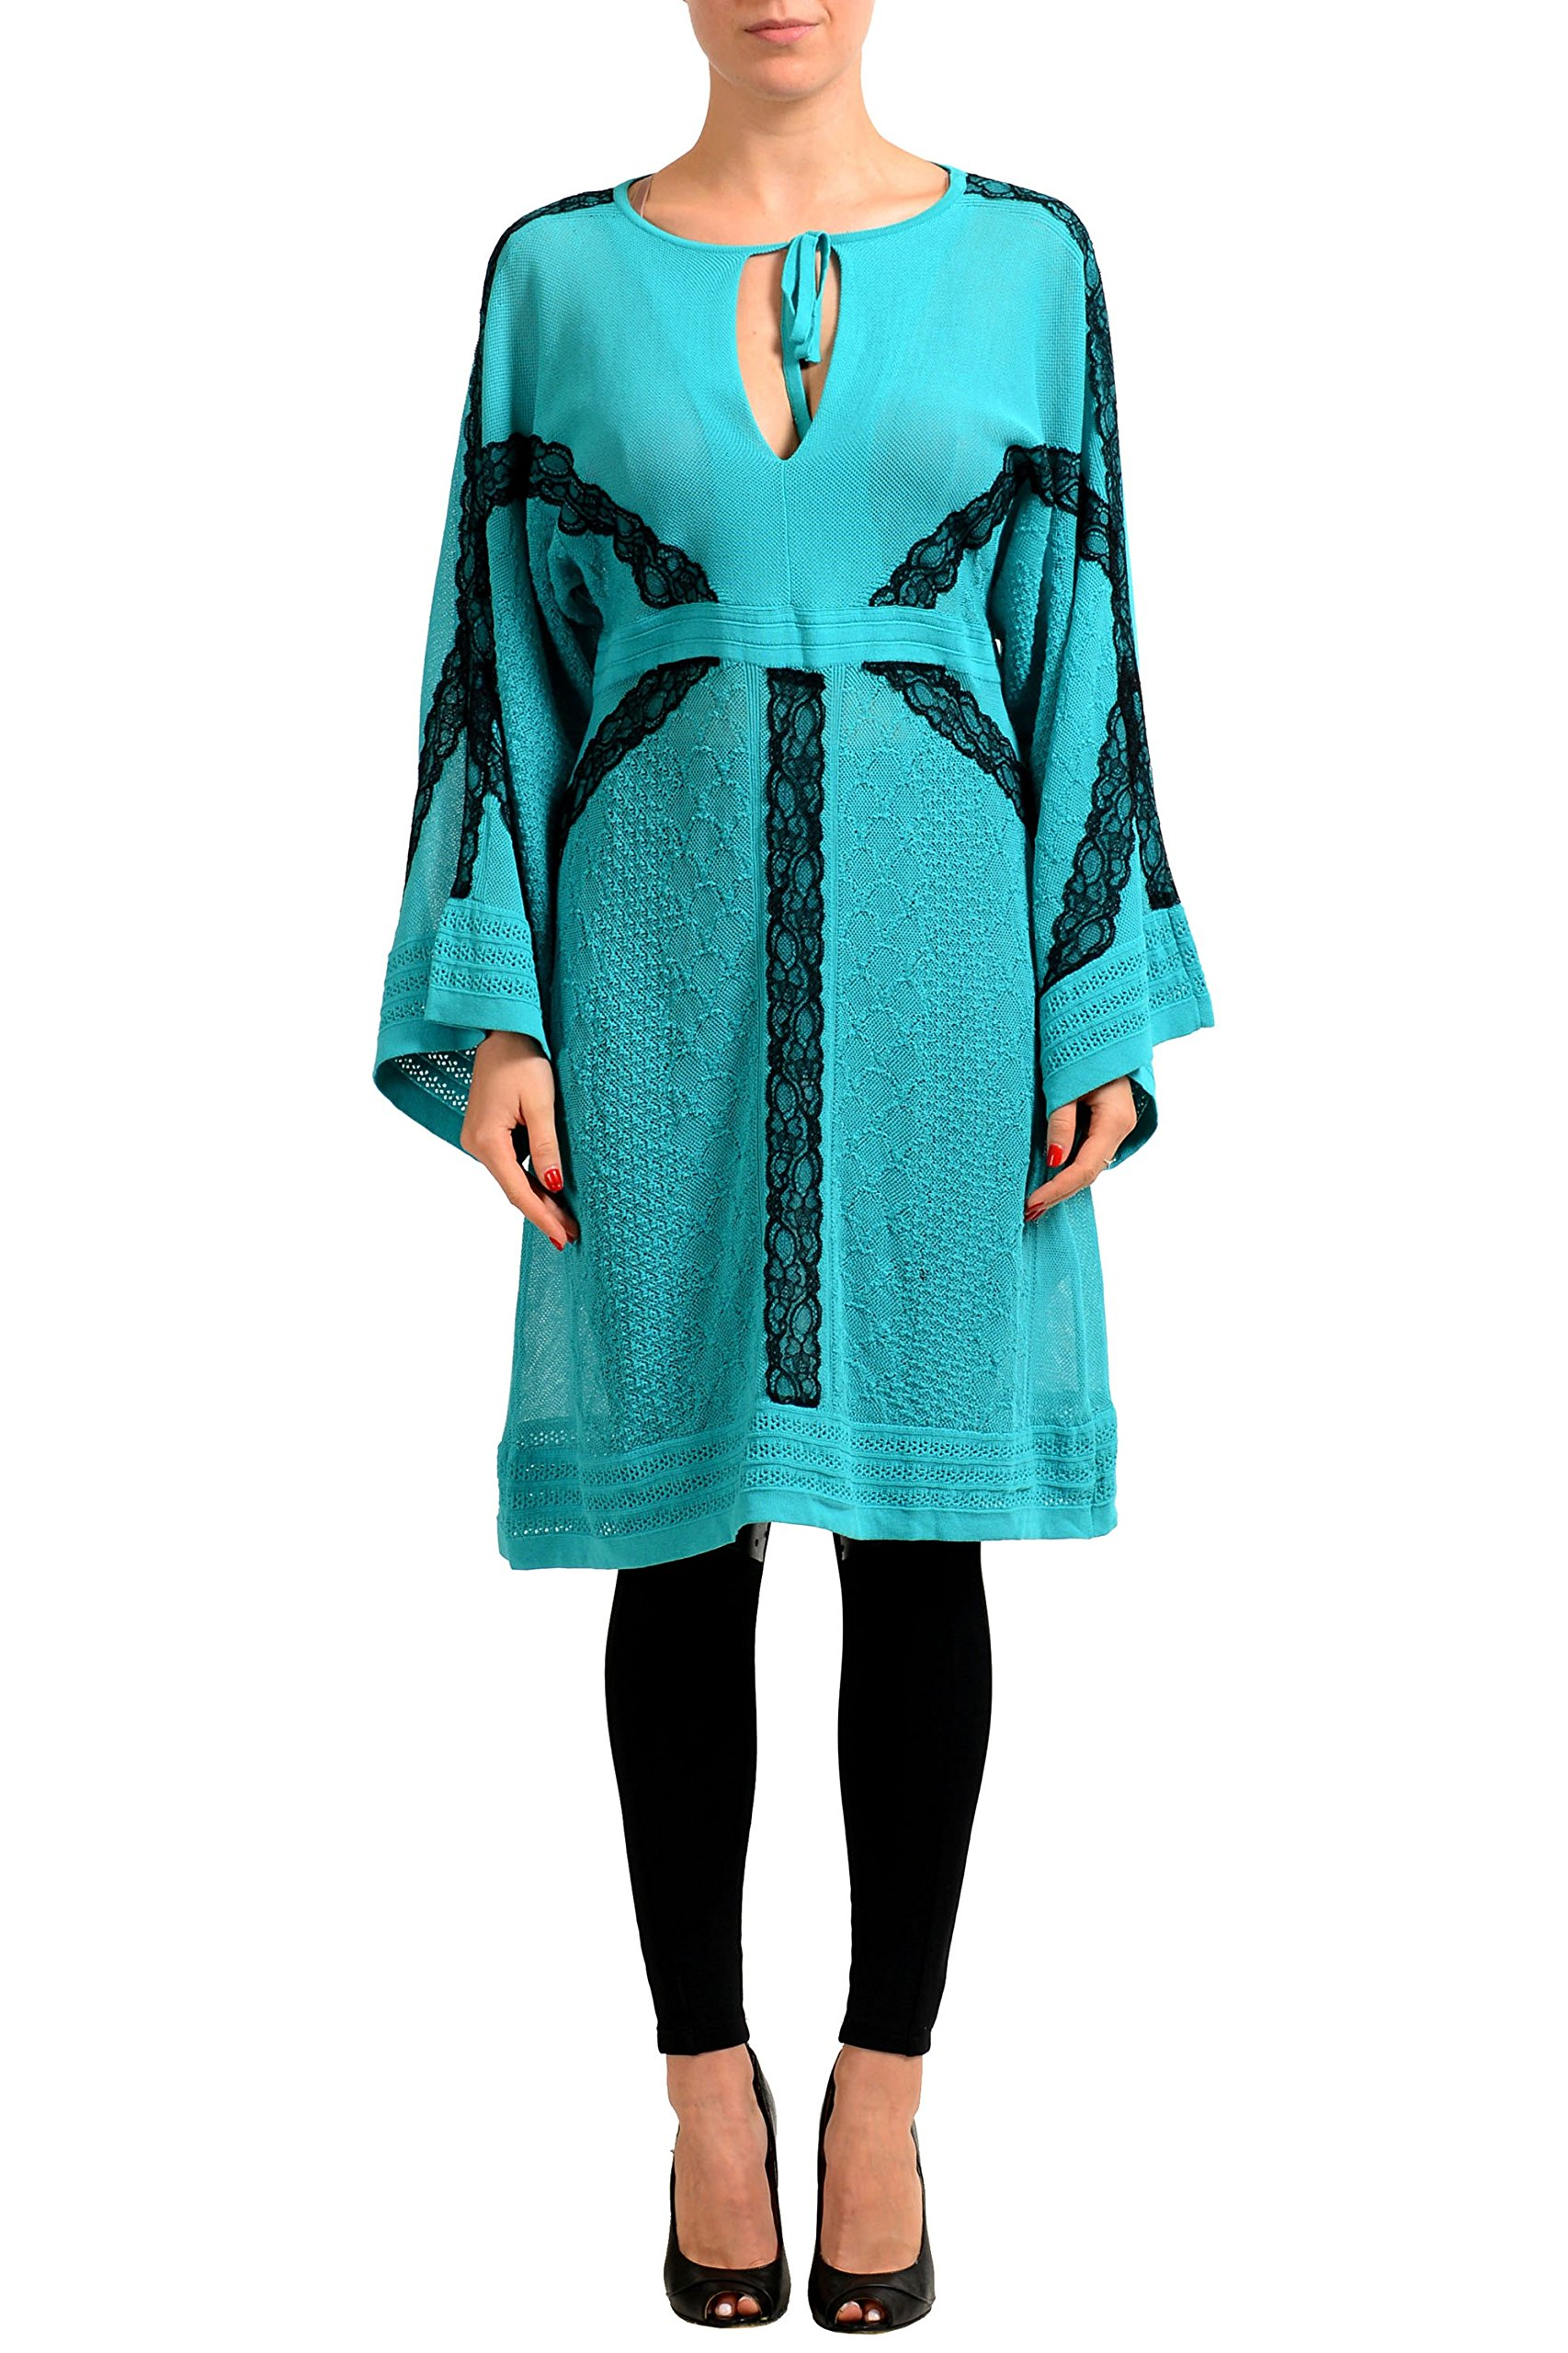 Available at Amazon: Just Cavalli Multi-Color See Through Women's Sweater Dress US S IT 40